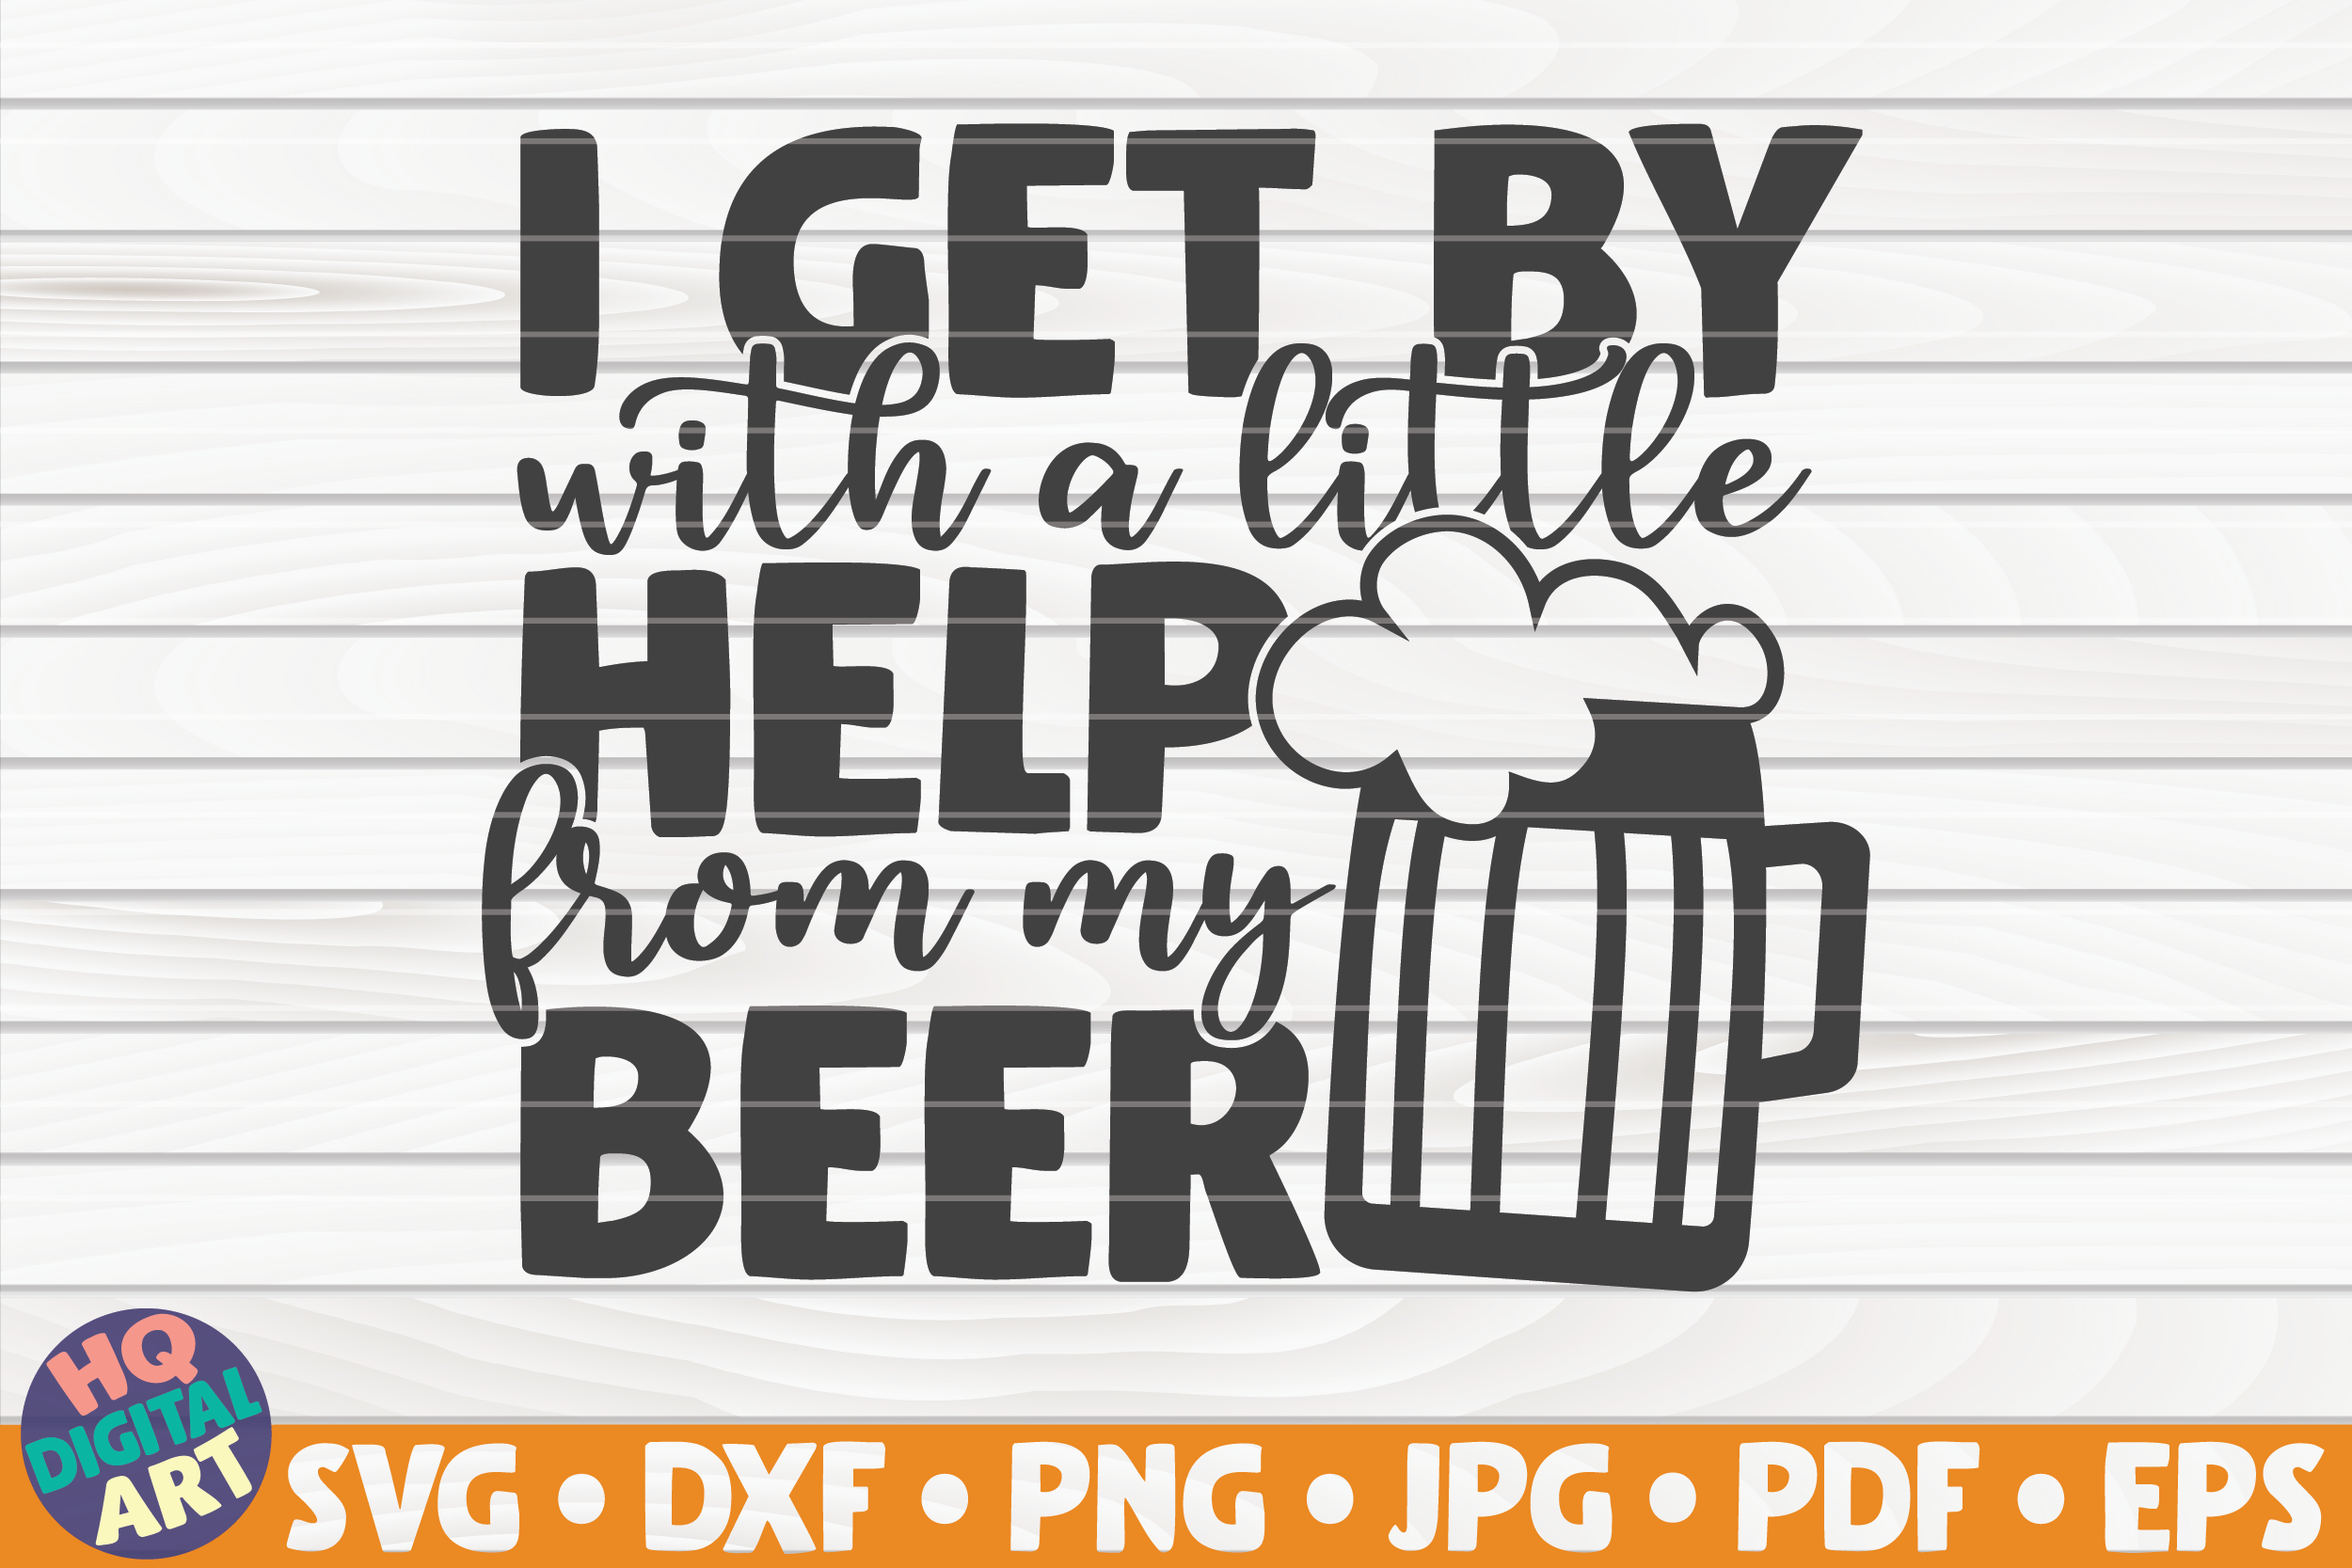 Download Free I Get By With A Little Help From My Beer Graphic By Mihaibadea95 for Cricut Explore, Silhouette and other cutting machines.